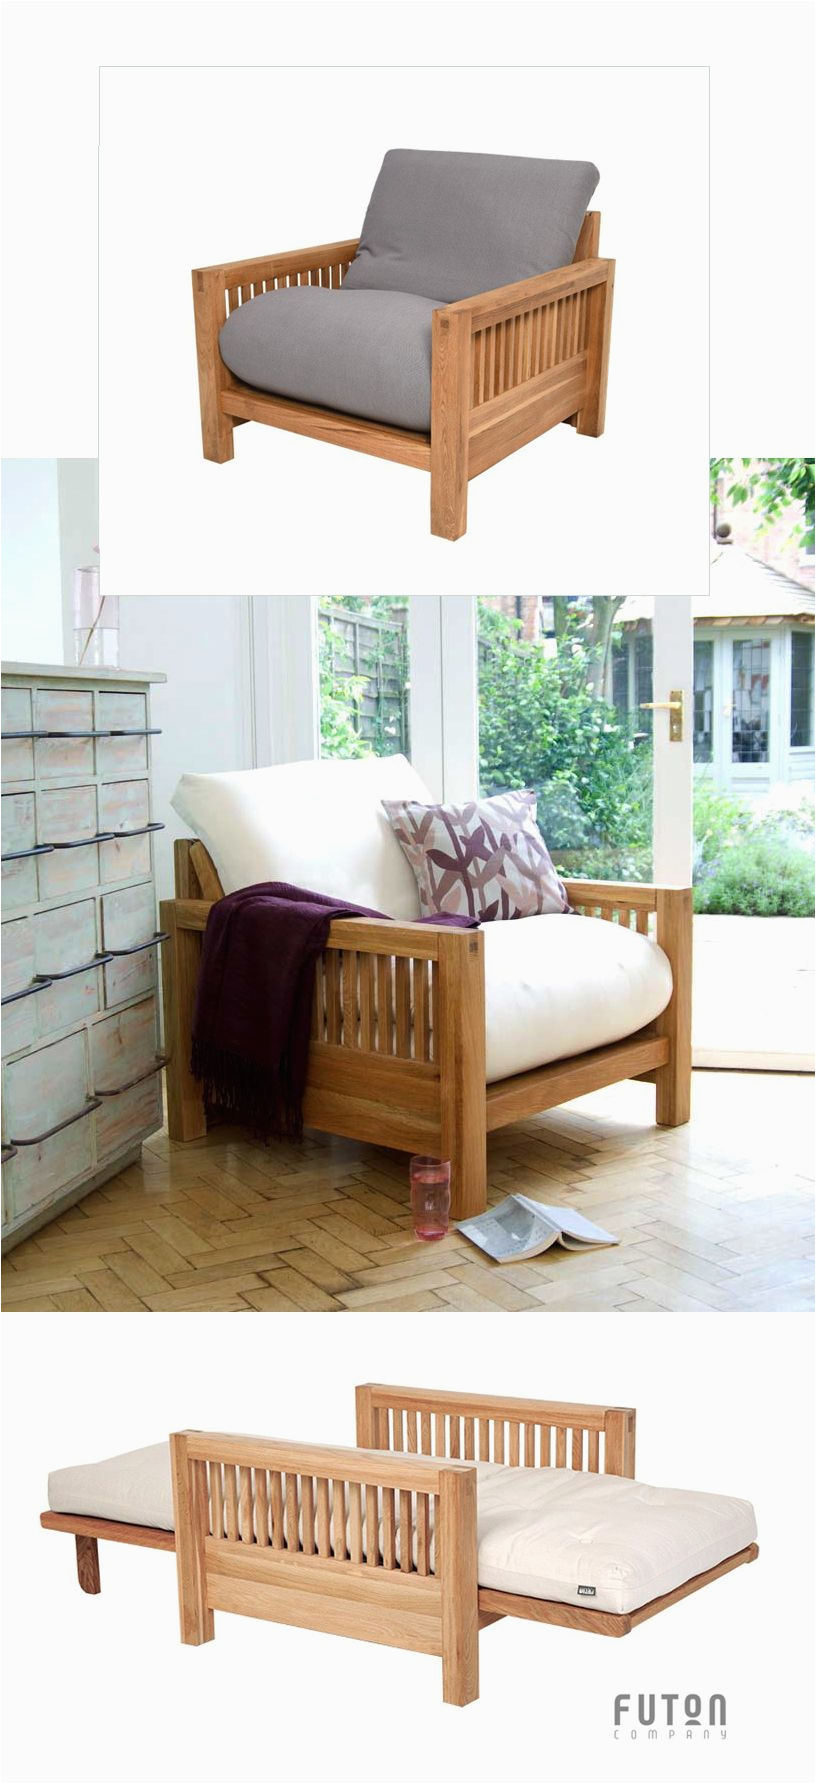 Single sofa Design Oke Single Seater Oak sofa Bed